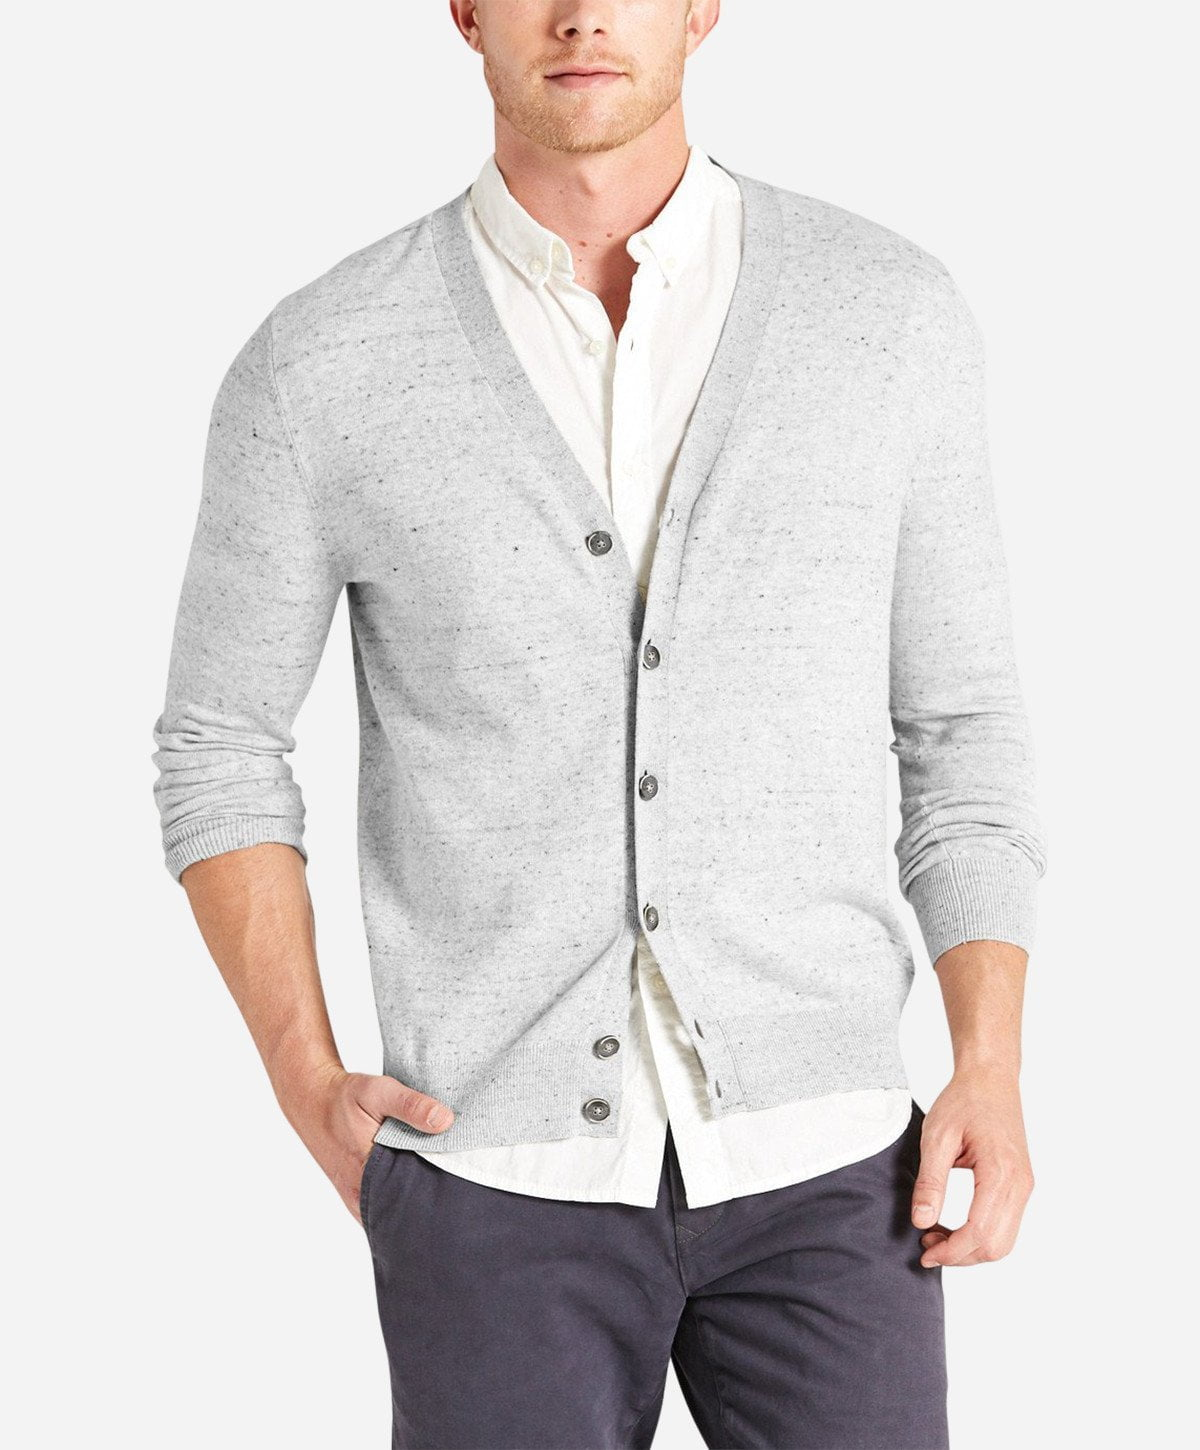 Izakaya Cardigan - Heather Grey